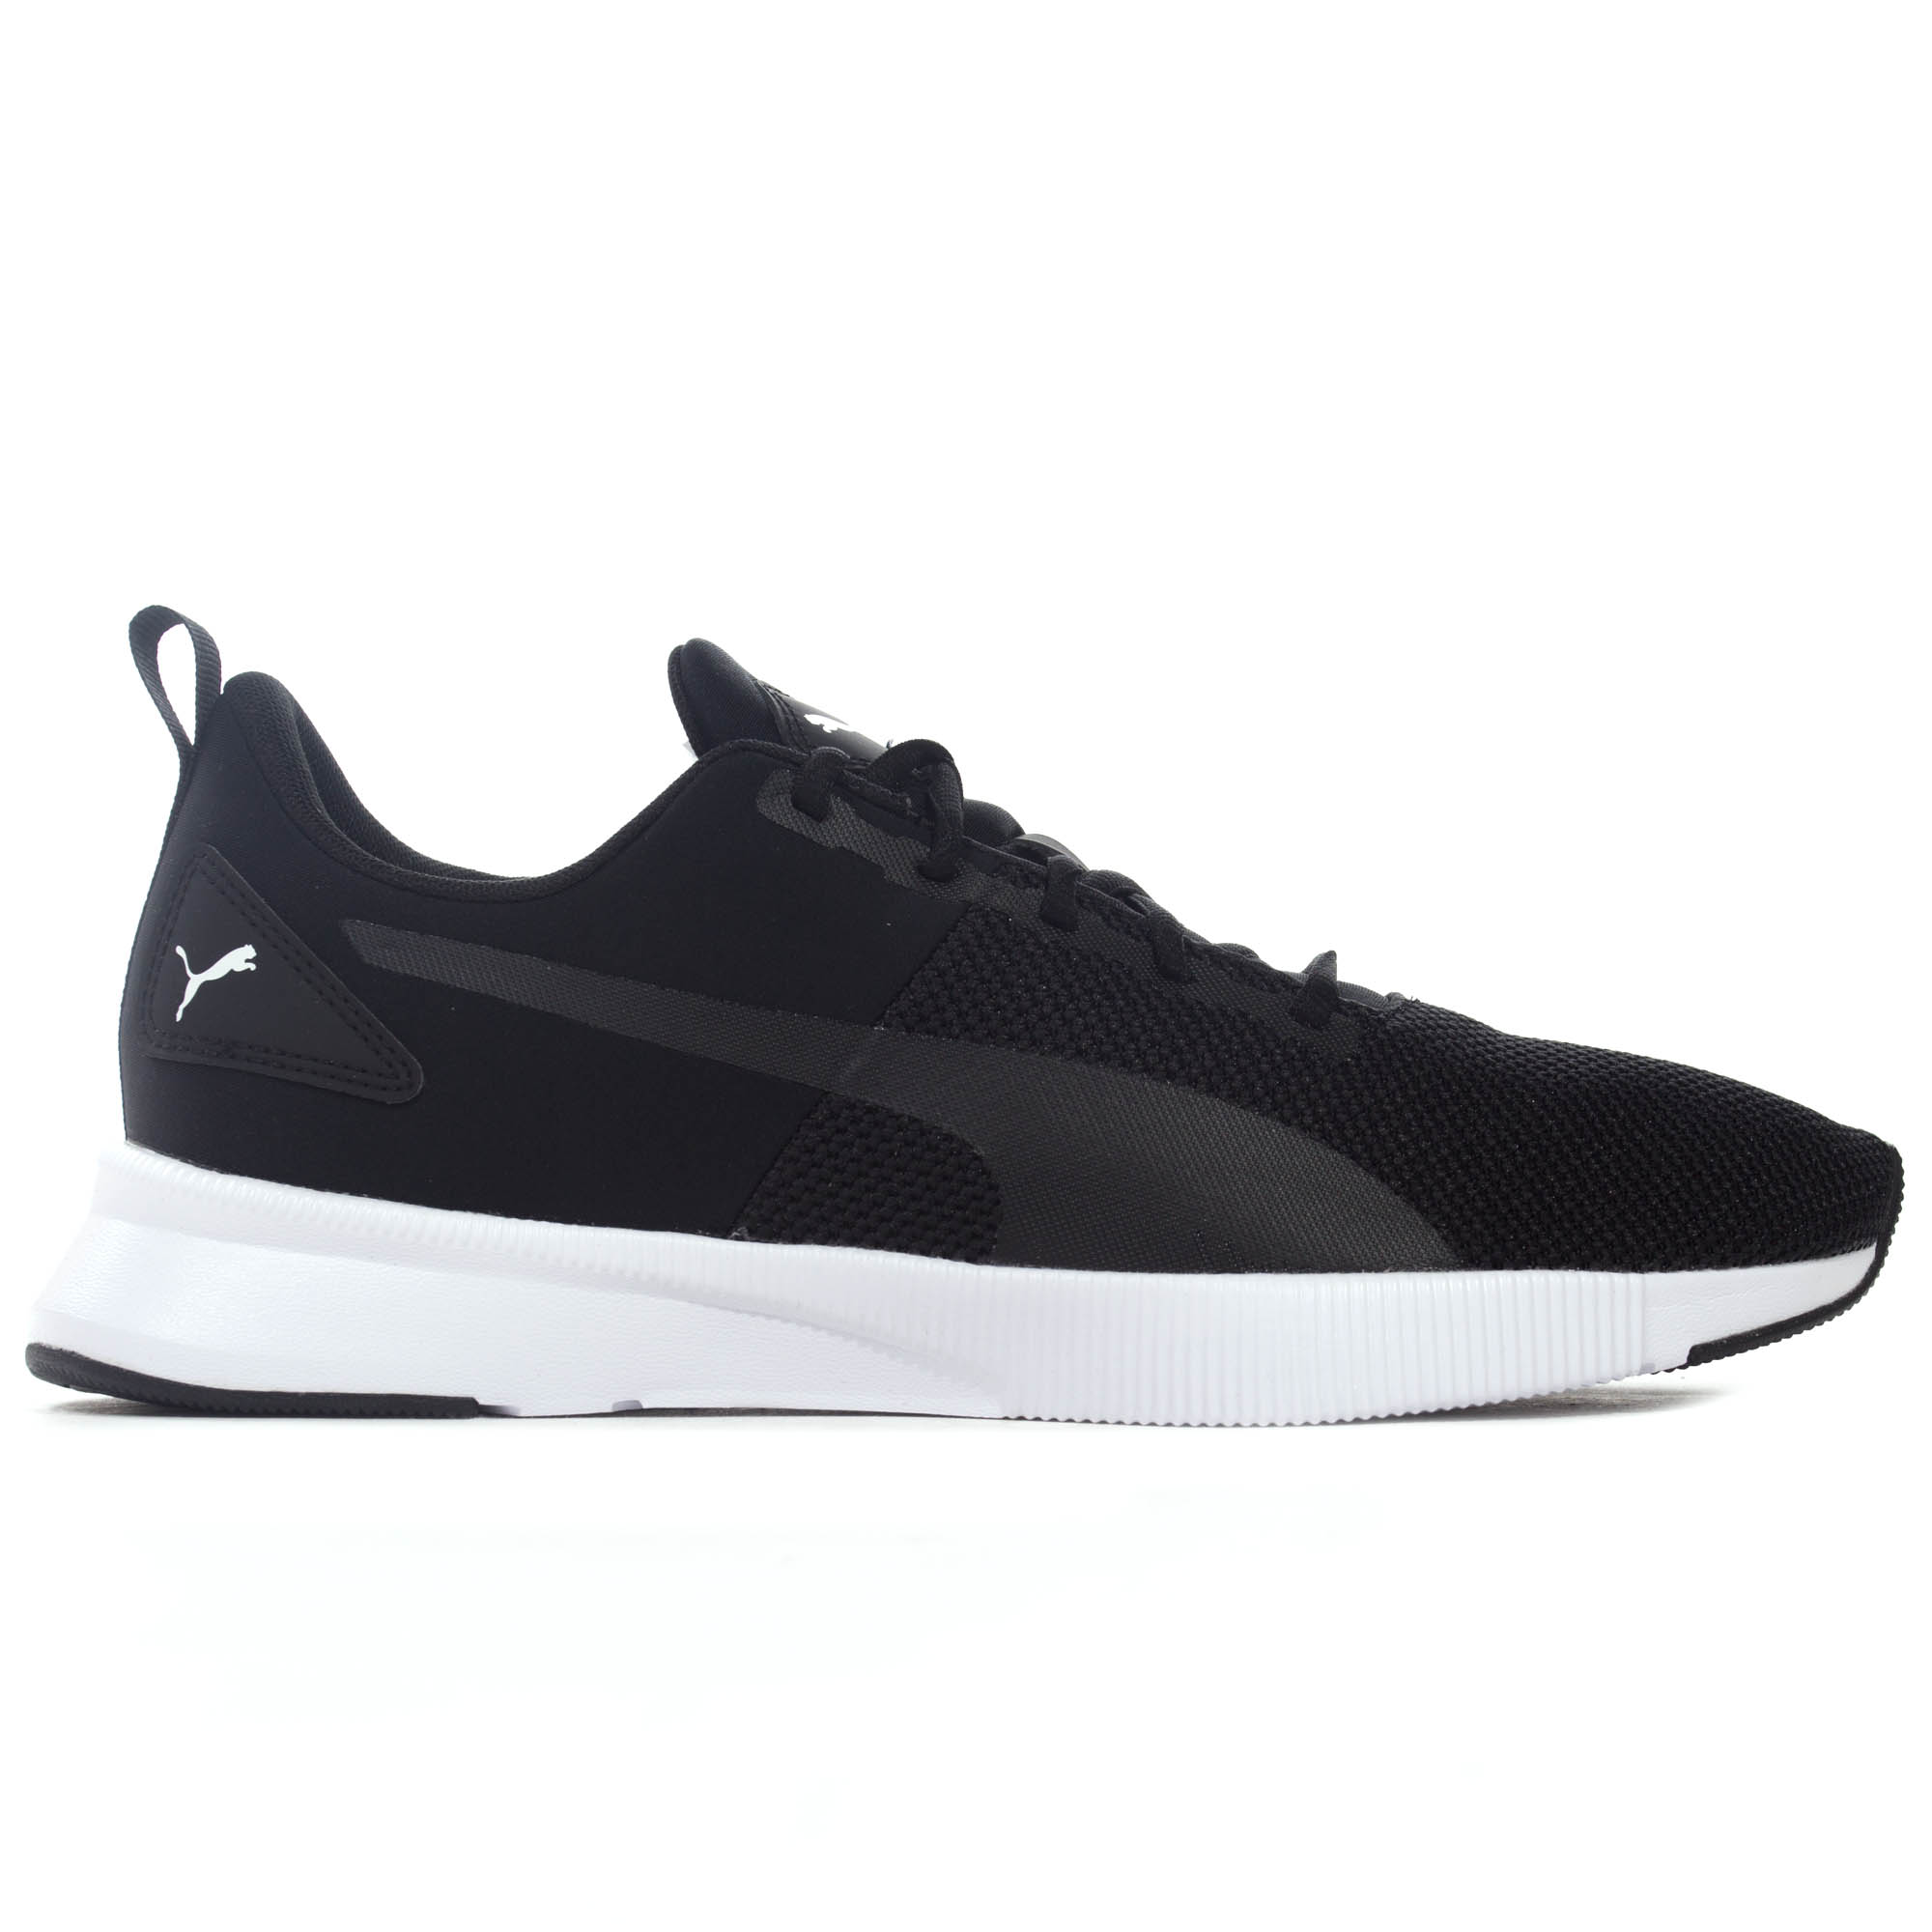 b0aa8e17556 Details about Puma Flyer Runner Mens Neutral Running Trainer Shoe  Black White